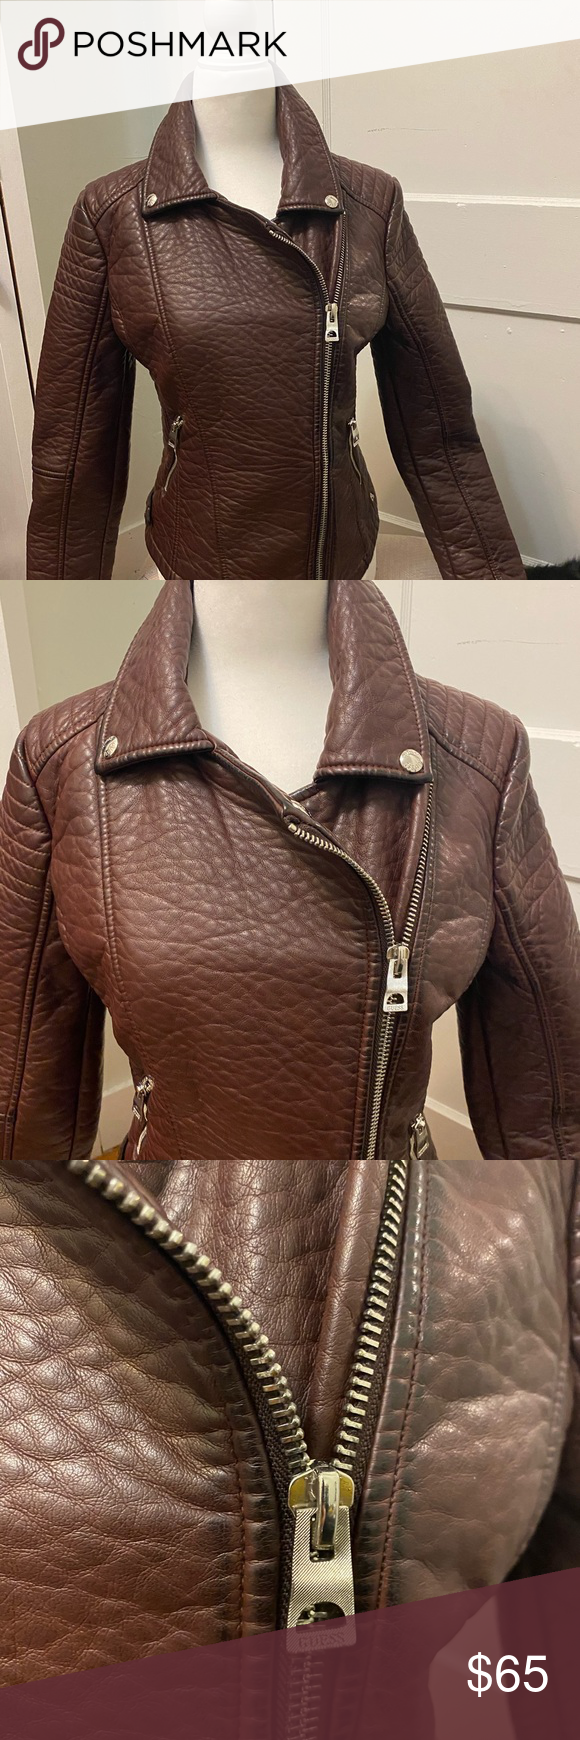 Guess Leather Jacket Clothes Design Fashion Leather Jacket [ 1740 x 580 Pixel ]